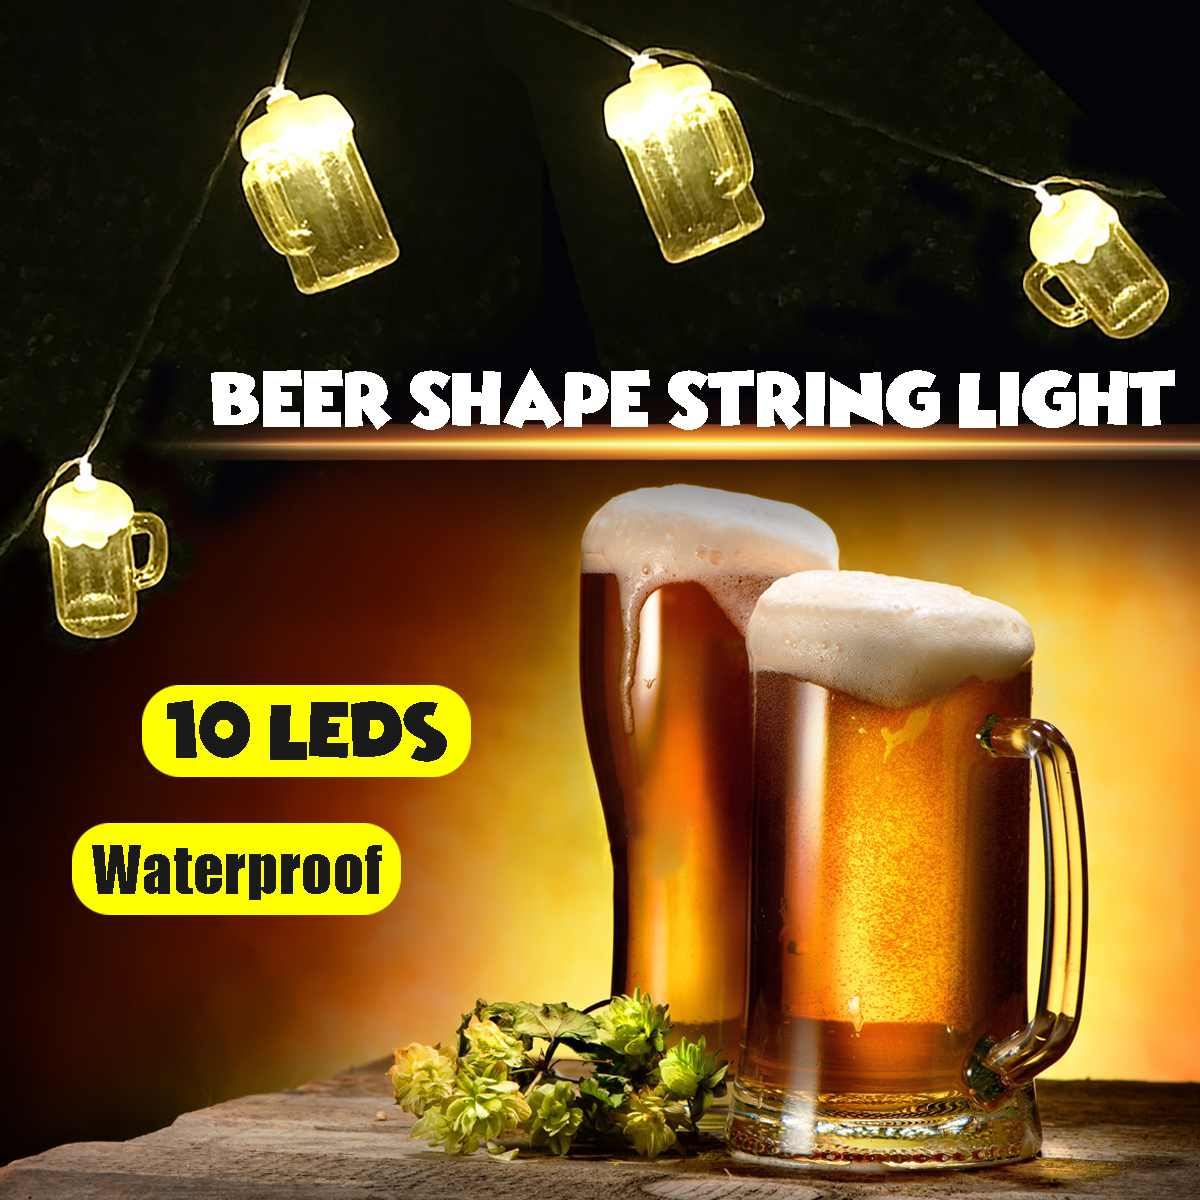 10 LED Bulbs Beer-Festival String Light Fairy Hanging Lamp Party Plastic Decor Outdoor High Temperature Resistant Waterproof